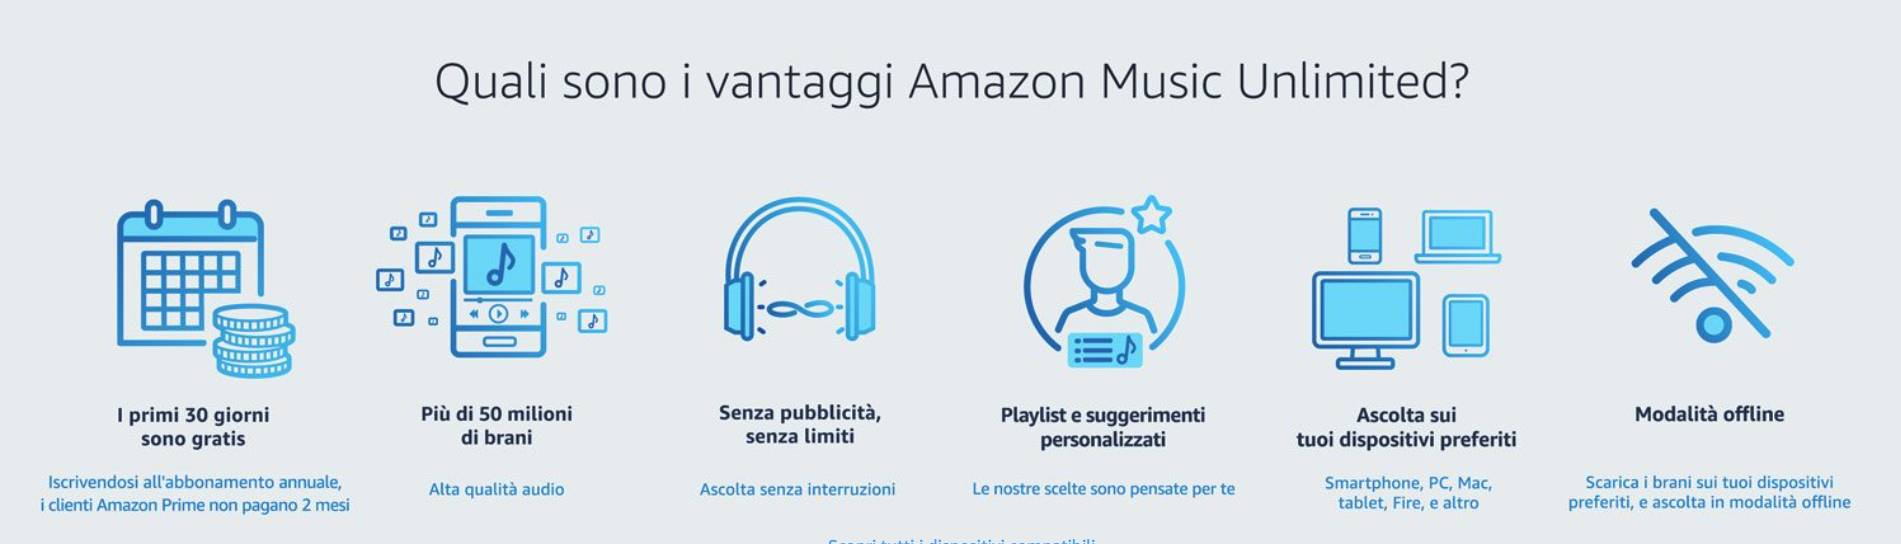 www.italiamac.it amazon music unlimited in offerta a e0 99 per tre mesi www.italiamac.it amazon music unlimited in offerta a e0 99 per tre mesi schermata 2017 12 26 alle 21.17.29 Amazon Music Unlimited in offerta a €0.99 per tre mesi